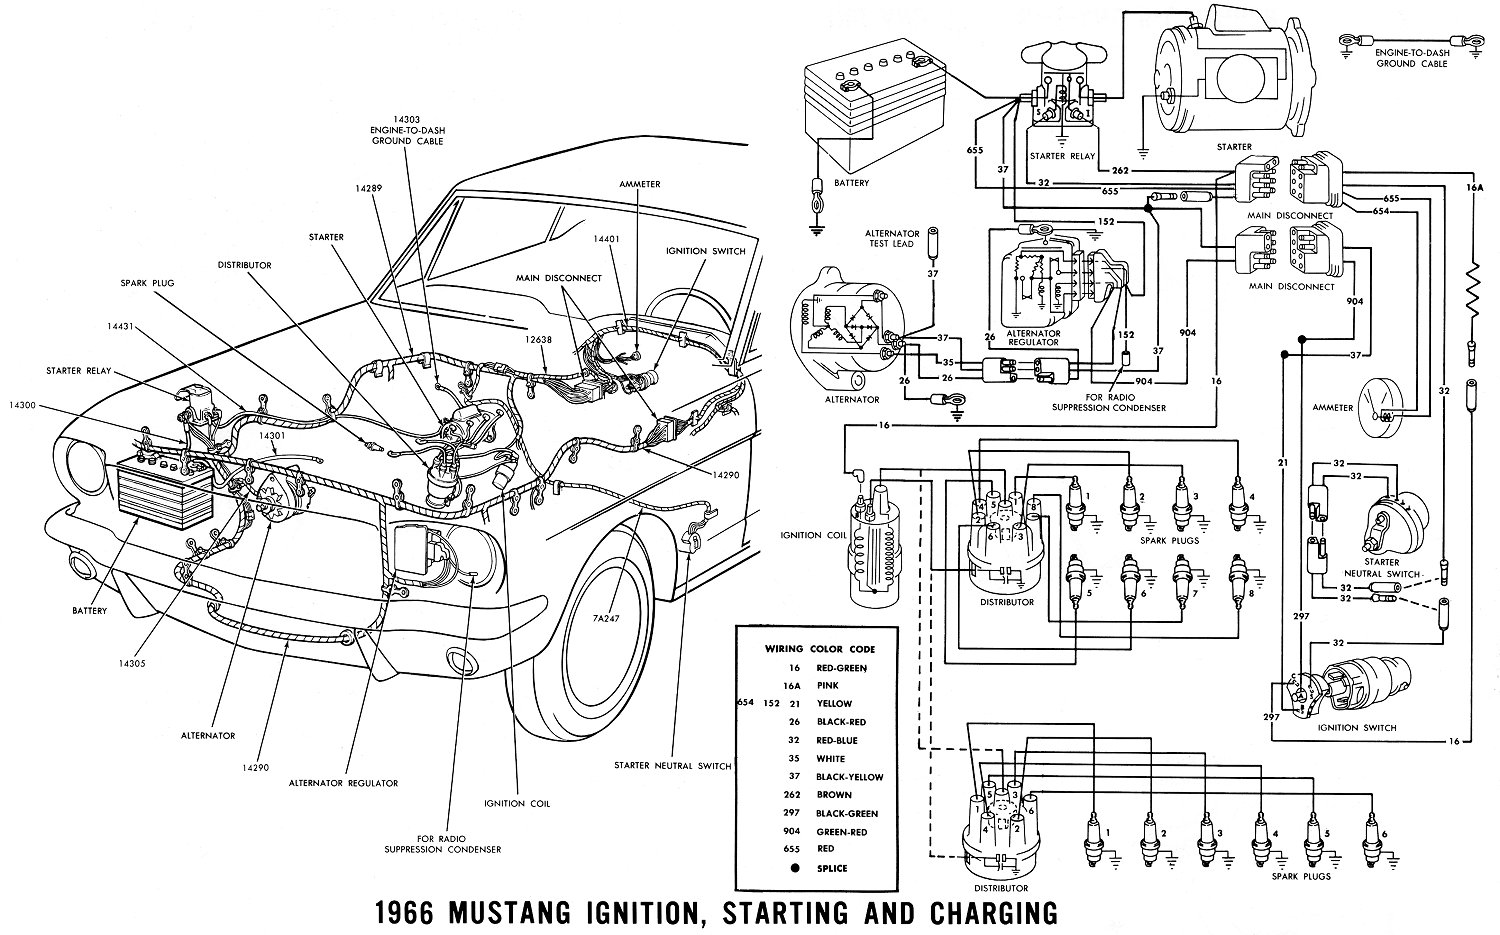 Wiring on 1970 Ford Maverick Wiring Diagram